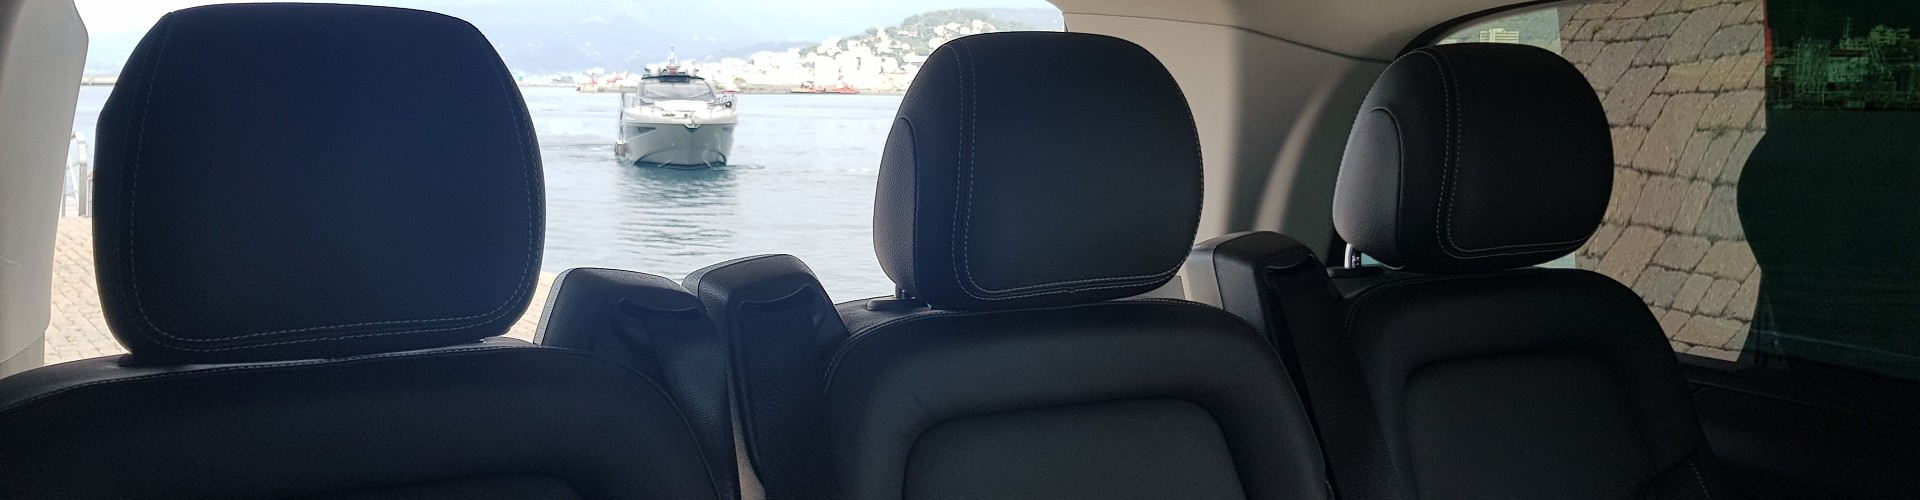 Portovenere car rental | Pisa & lucca full day tour | private driver from florence to cinque terre